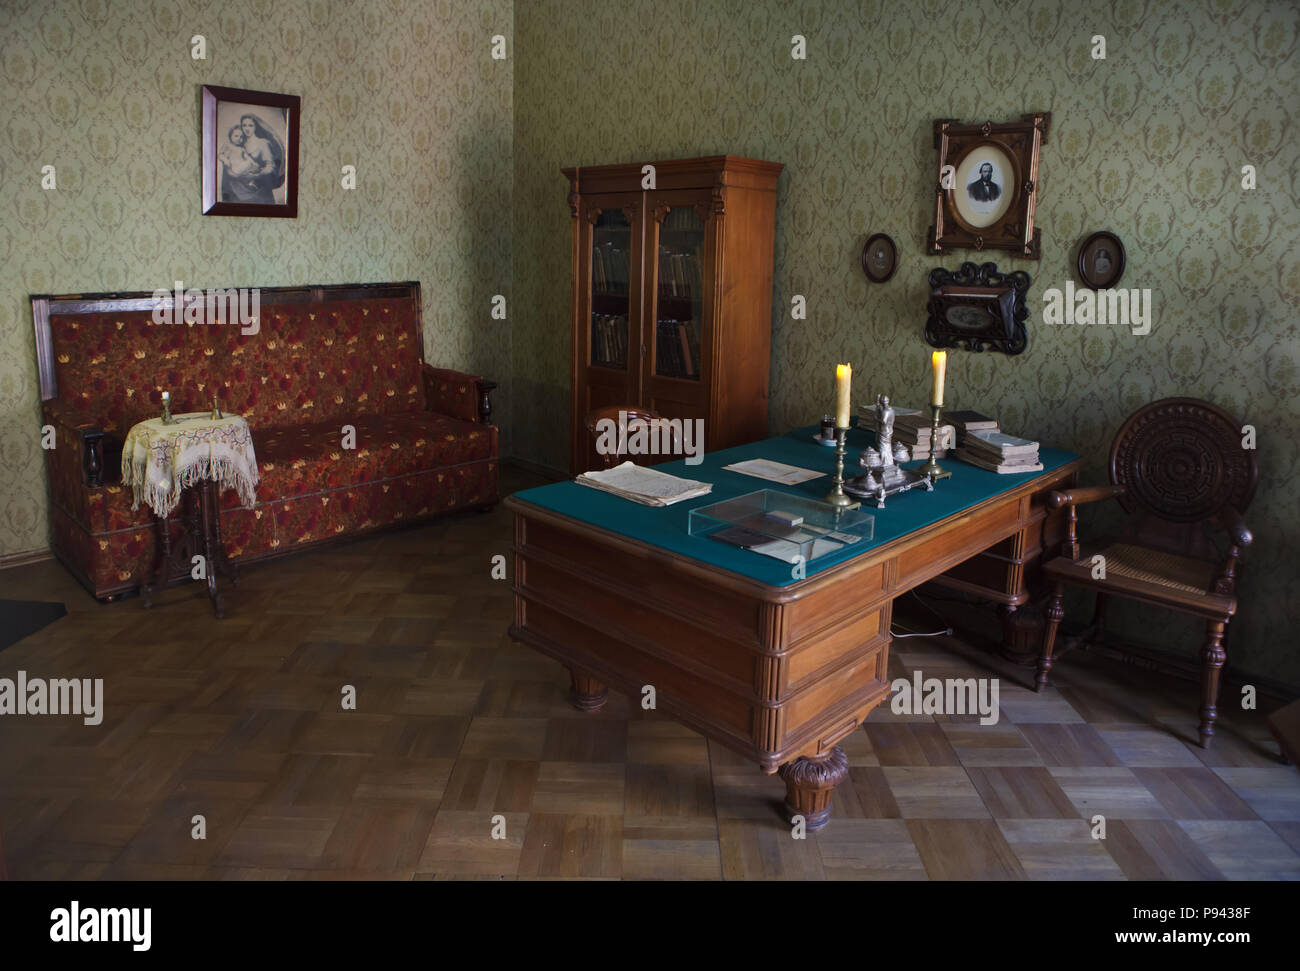 Cabinet of Russian novelist Fyodor Dostoevsky in his memorial apartment in Kuznechny Lane in Saint Petersburg, Russia. Fyodor Dostoevsky lived in the apartment twice during his life: first for a short period in 1846 in the beginnings of his career, and later from October 1878 until his death in February 1881. He wrote his last novel The Brothers Karamazov here. The apartment is now a part of the Dostoevsky Literary Memorial Museum. - Stock Image